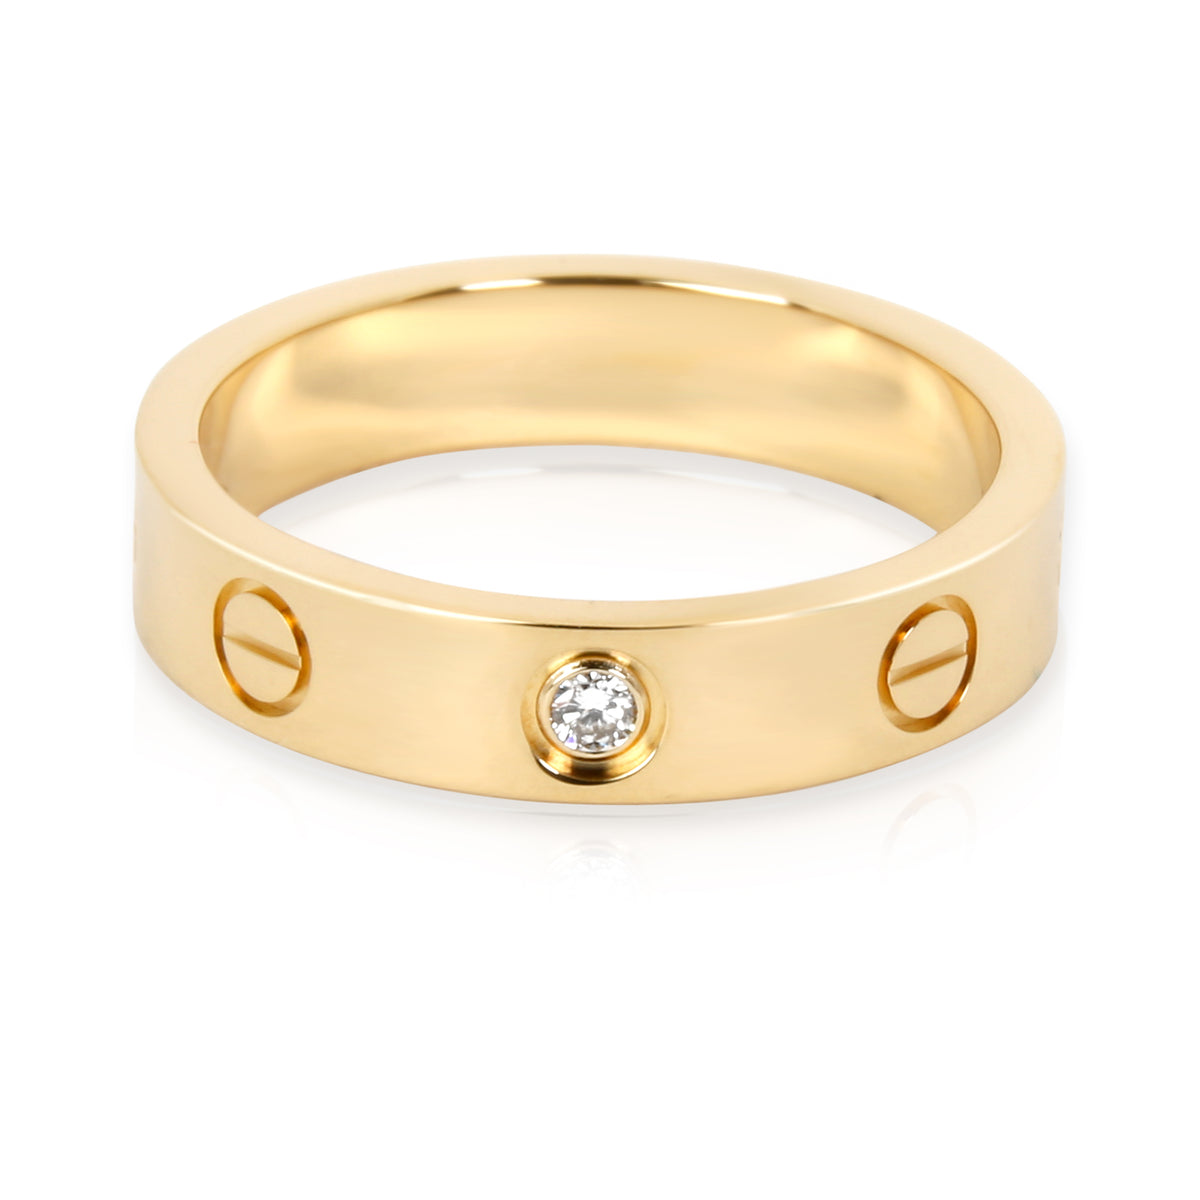 Cartier Love Diamond Ring in 18KT Yellow Gold 0.02 CTW